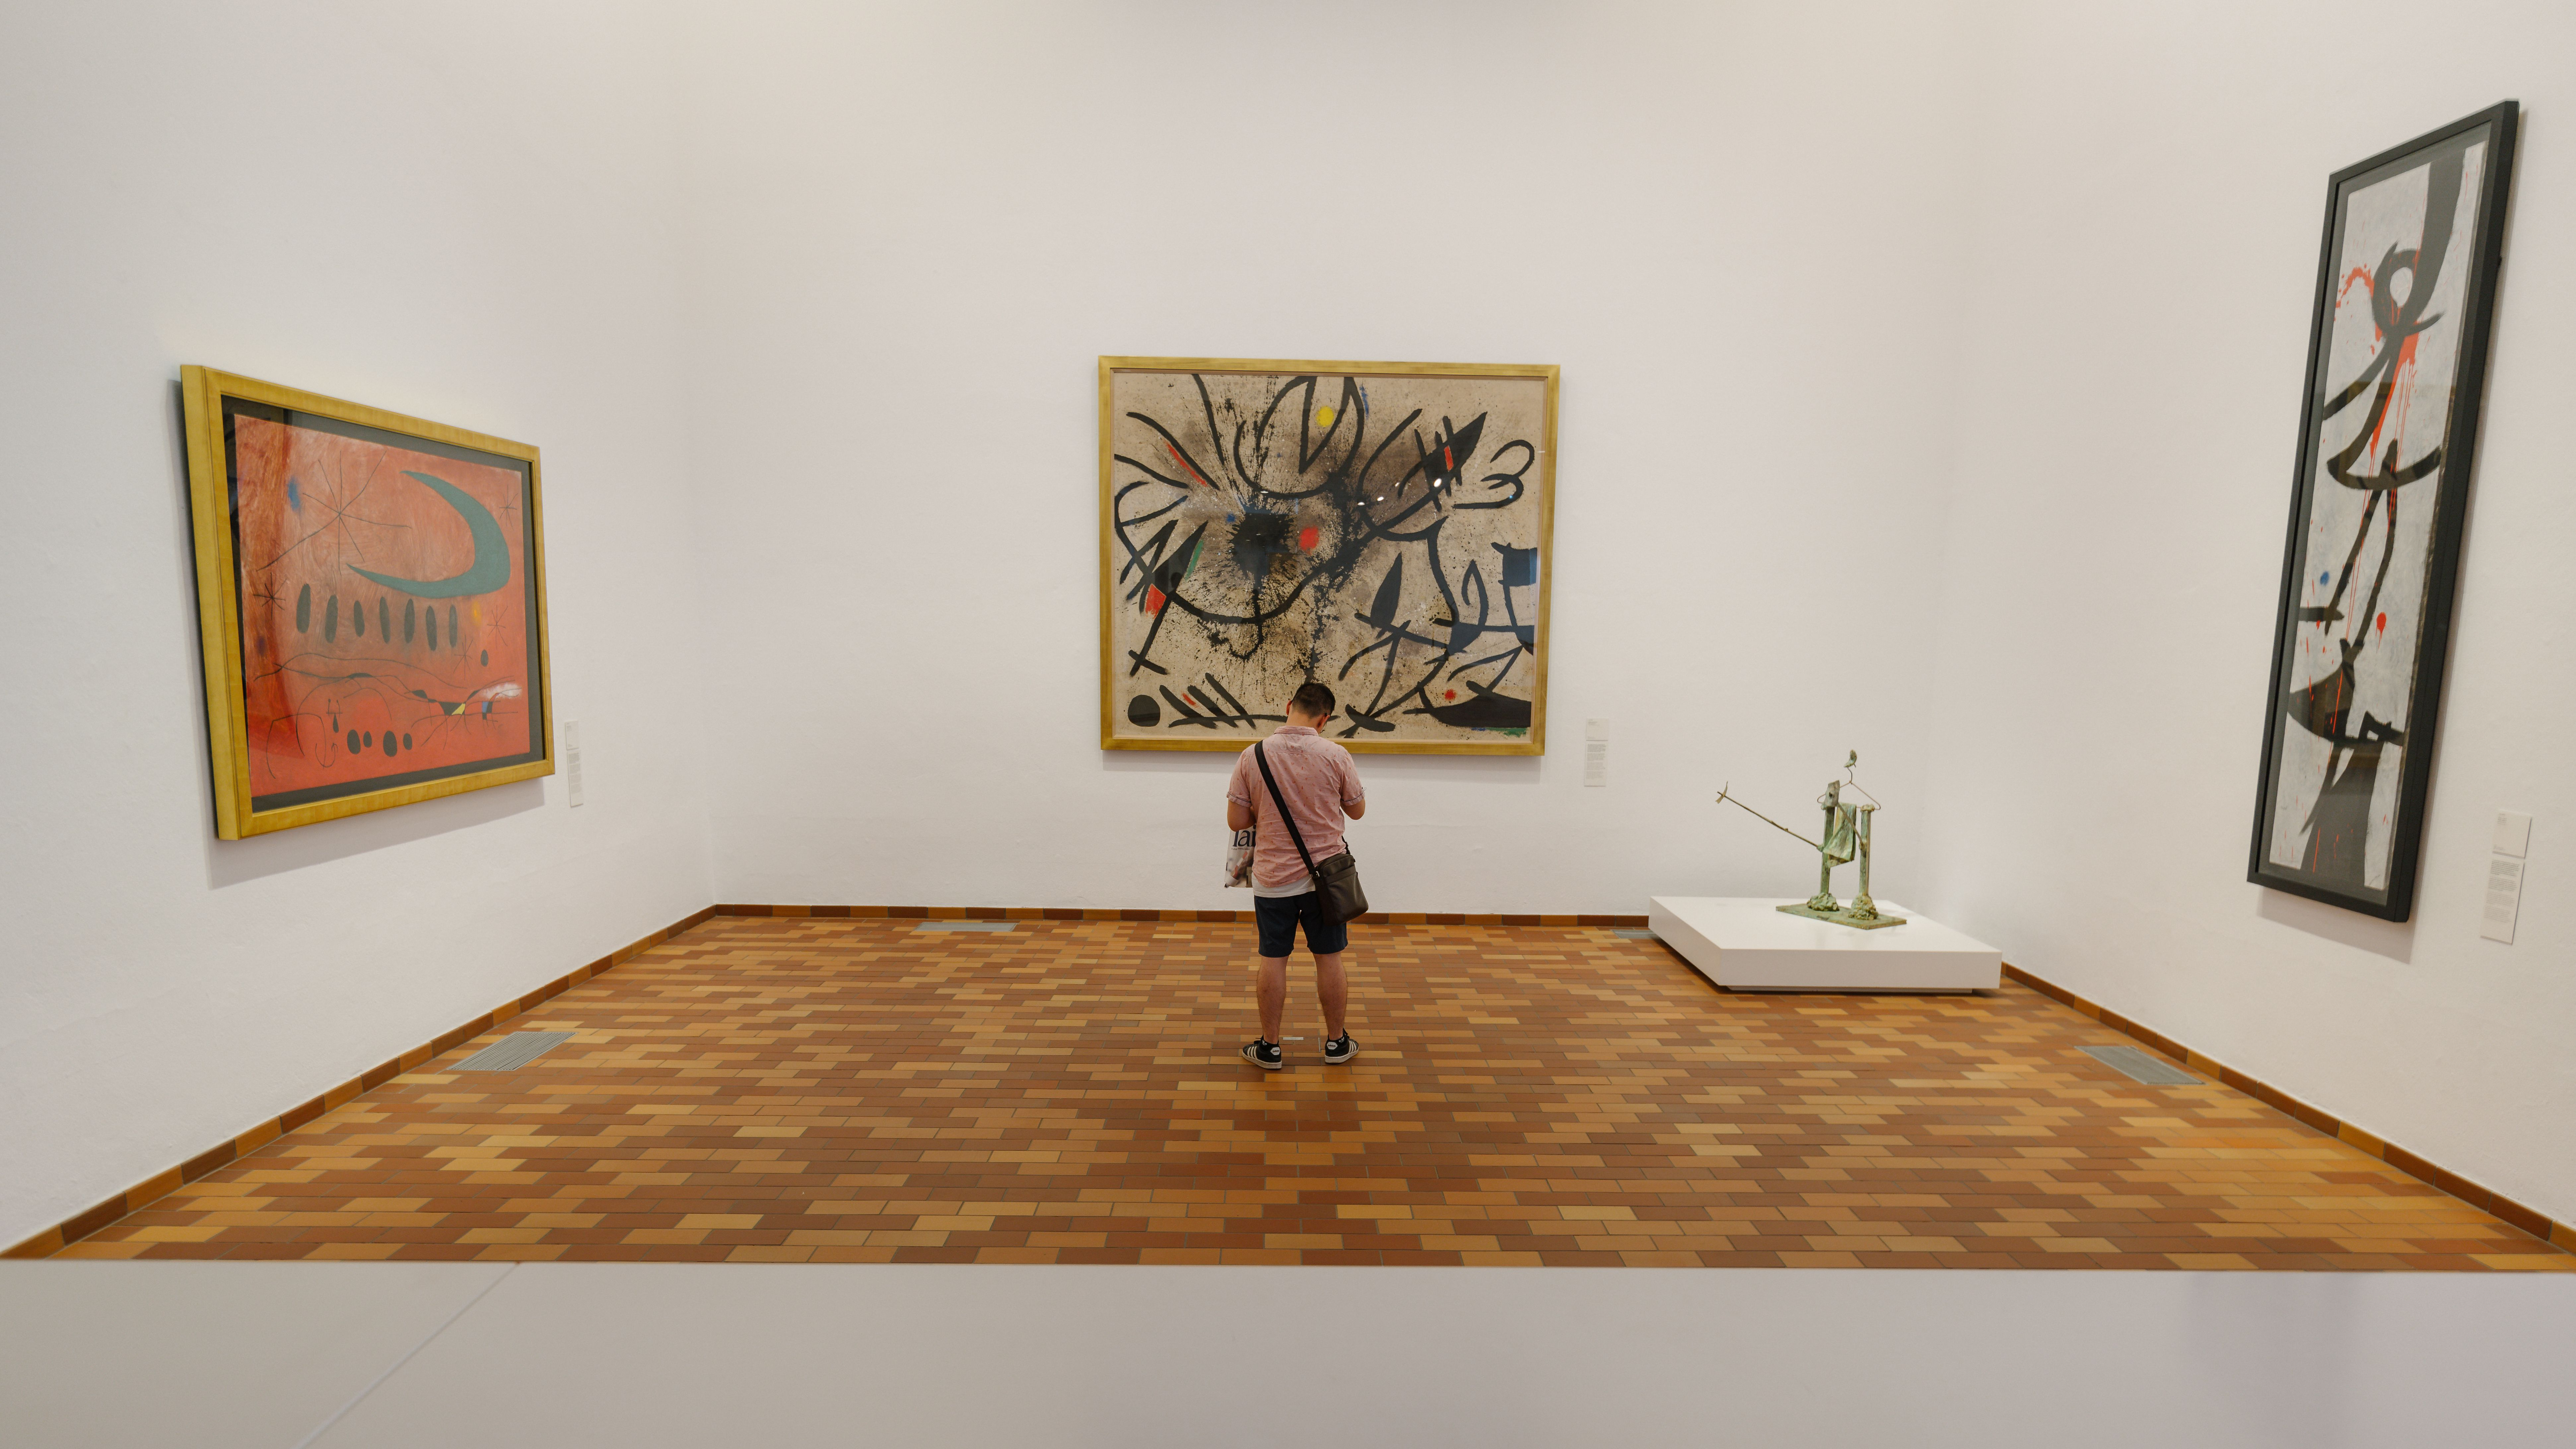 A man standing in front of a Joan Miro painting